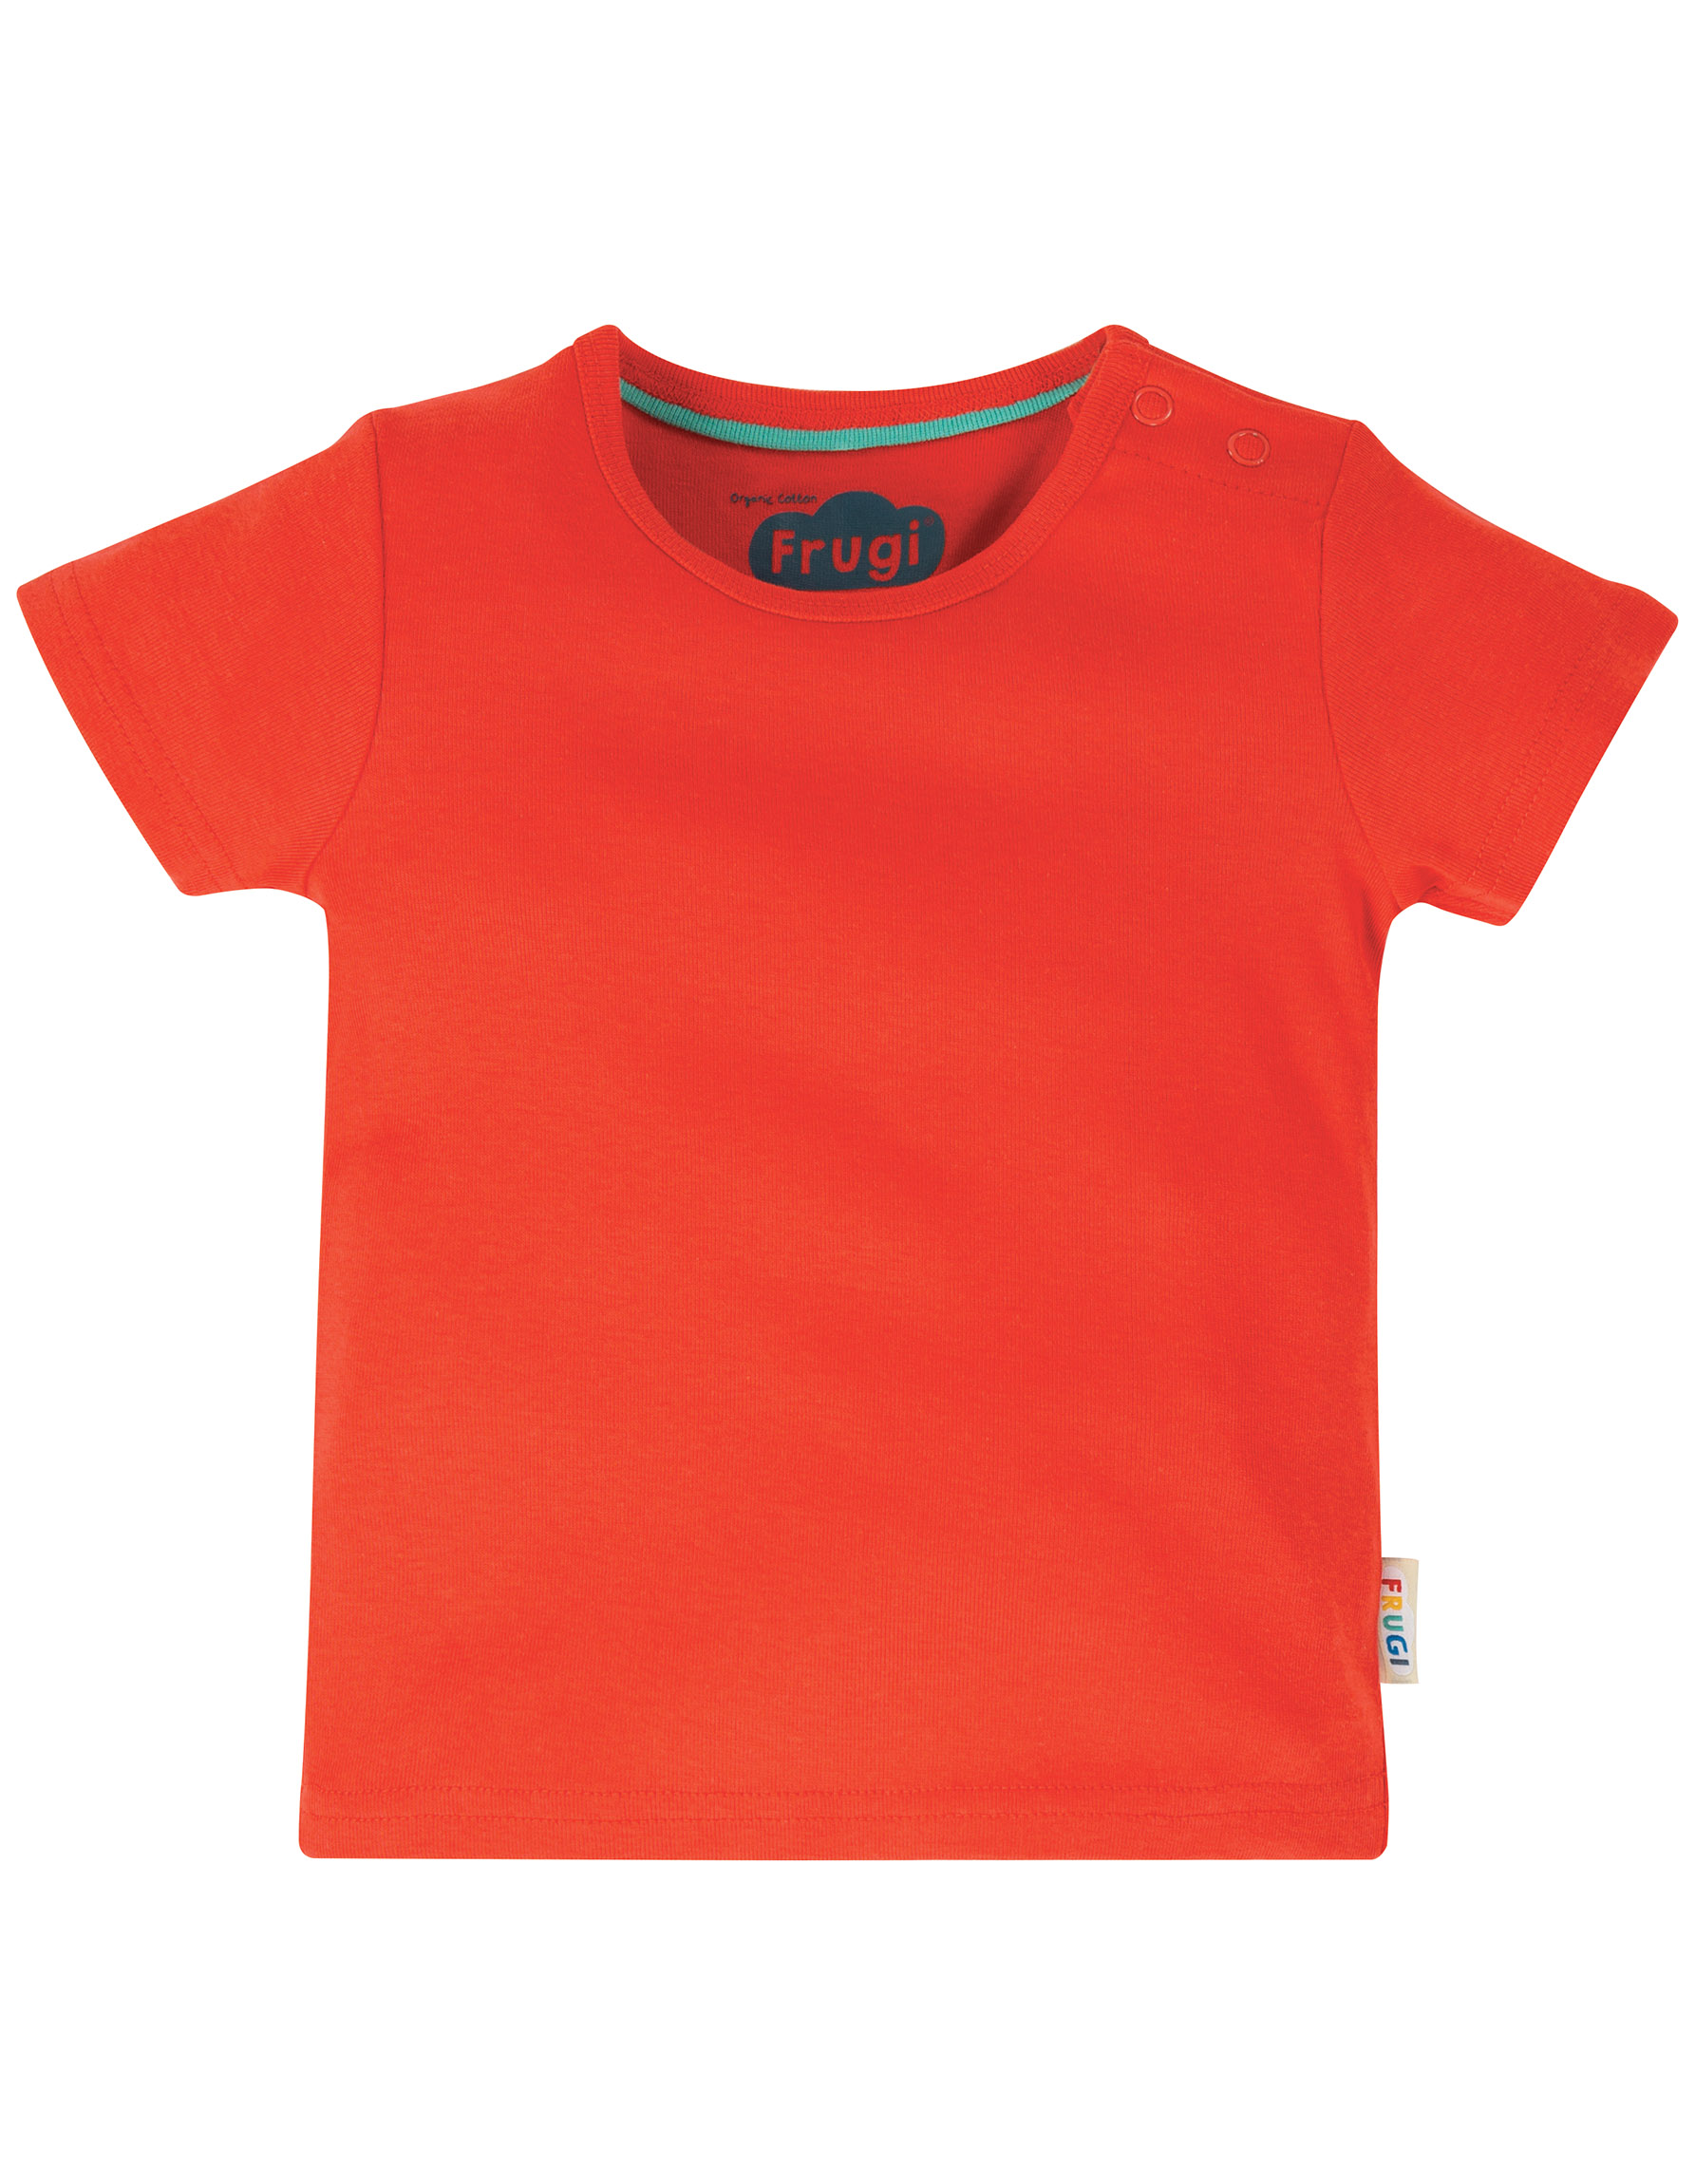 Frugi - favourite t-shirt - Koi Red